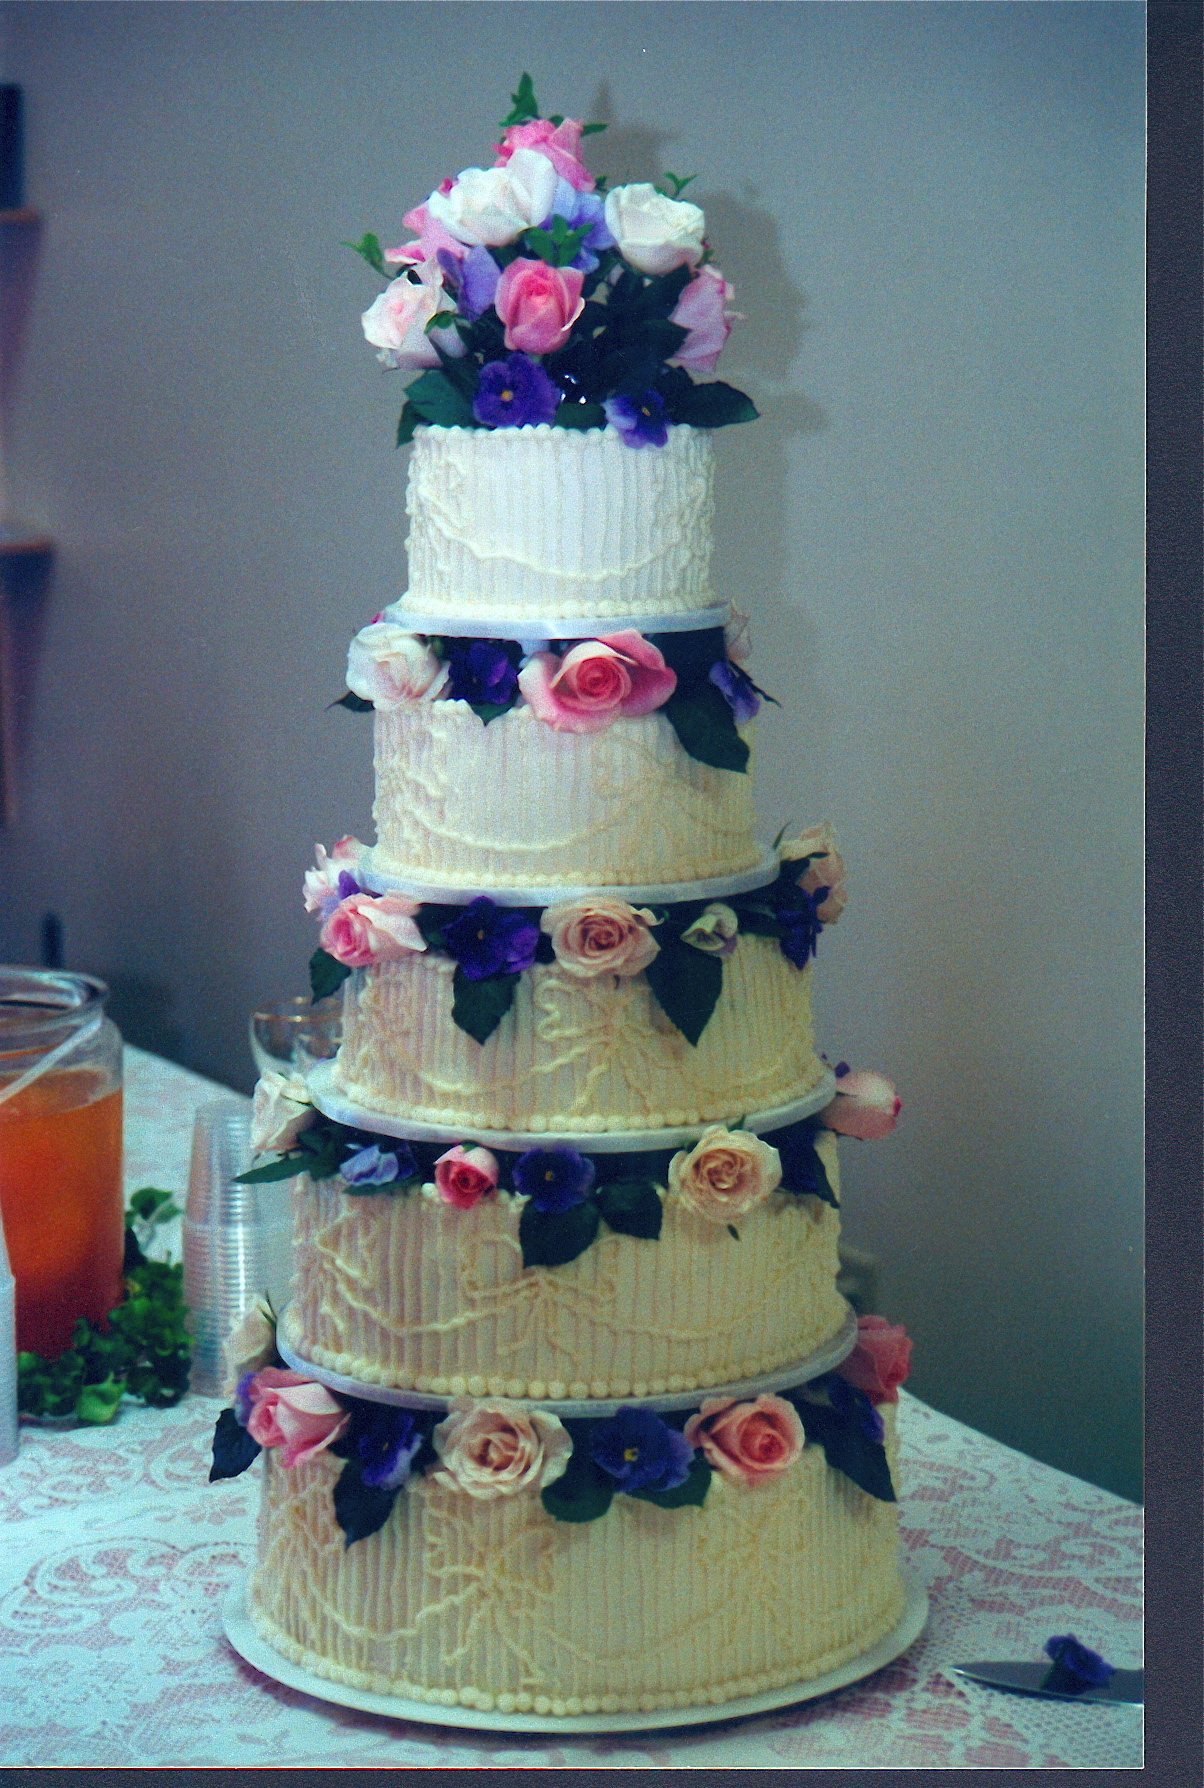 Cakes, white, pink, purple, cake